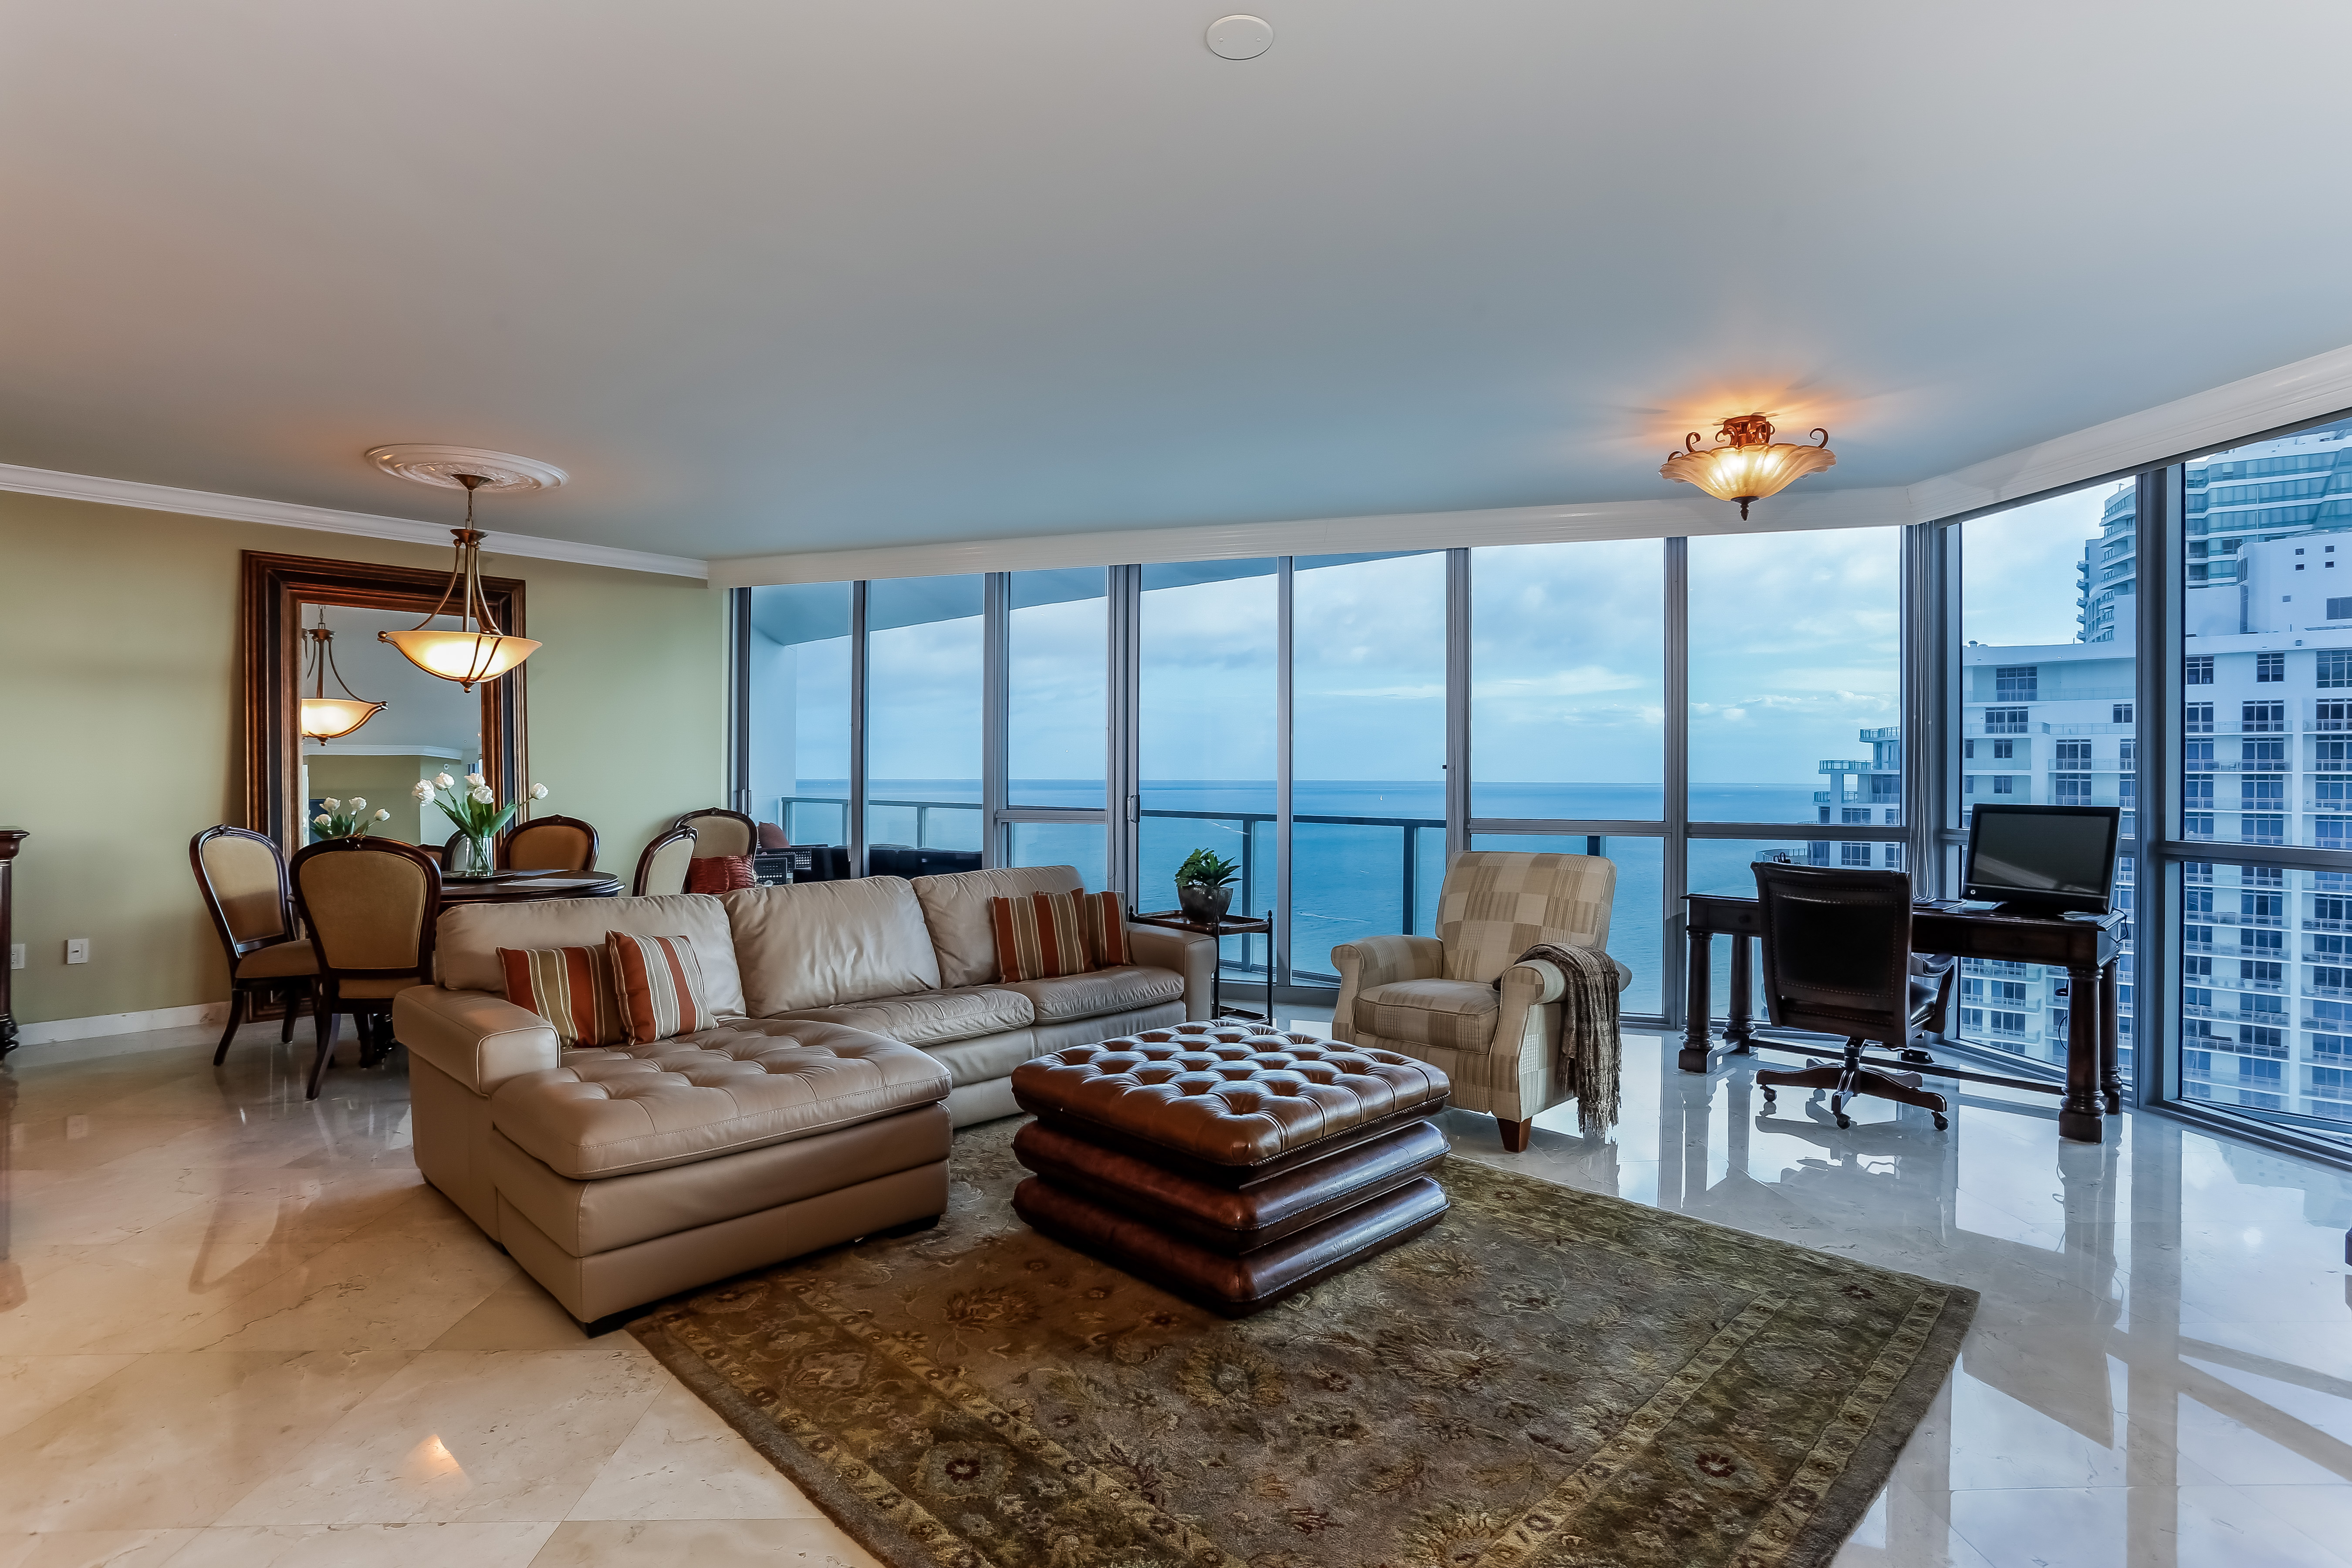 Condominium for Sale at 3101 S Ocean Dr #2706 3101 S Ocean Dr 2706 Hollywood, Florida, 33019 United States